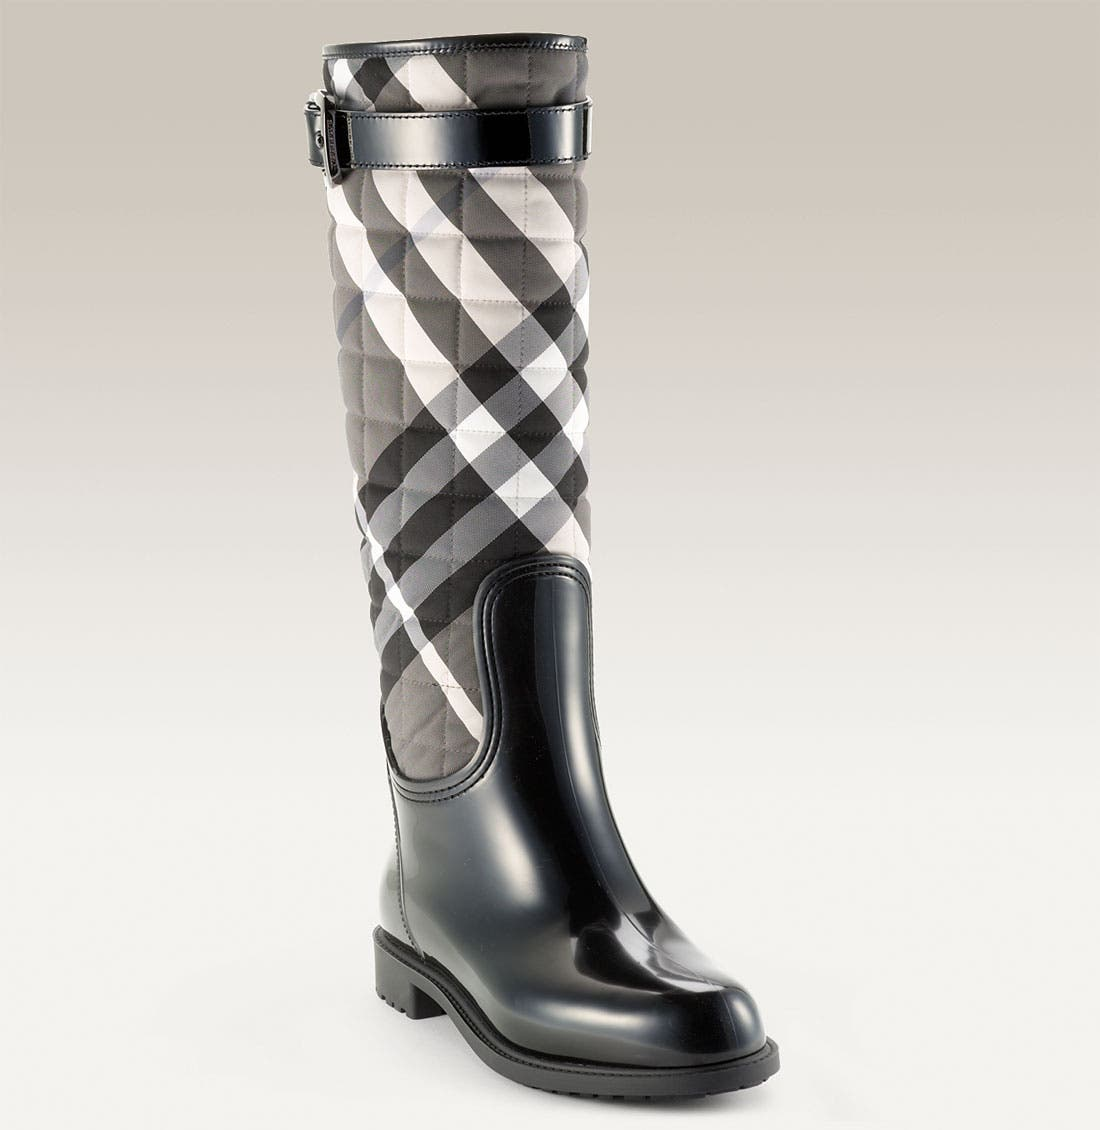 Main Image - Burberry Quilted Check Print Rain Boot